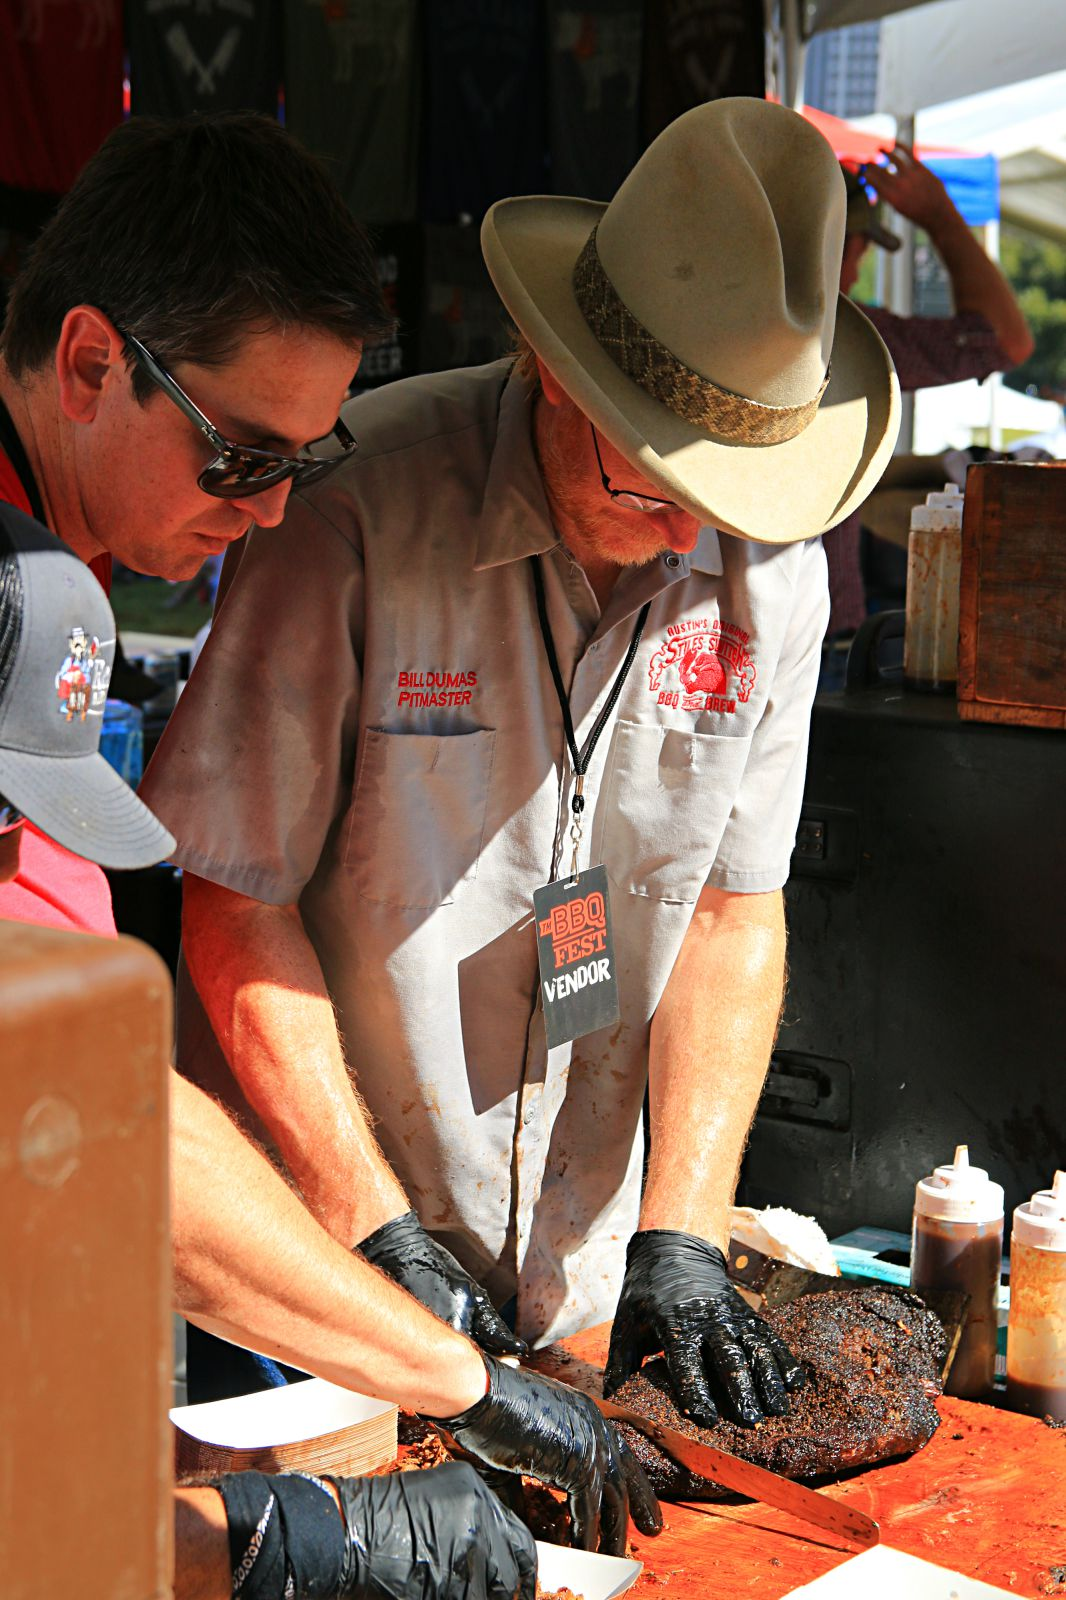 Bill Dumas slicing brisket for Stiles Switch at Texas Monthly BBQ Fest 2016